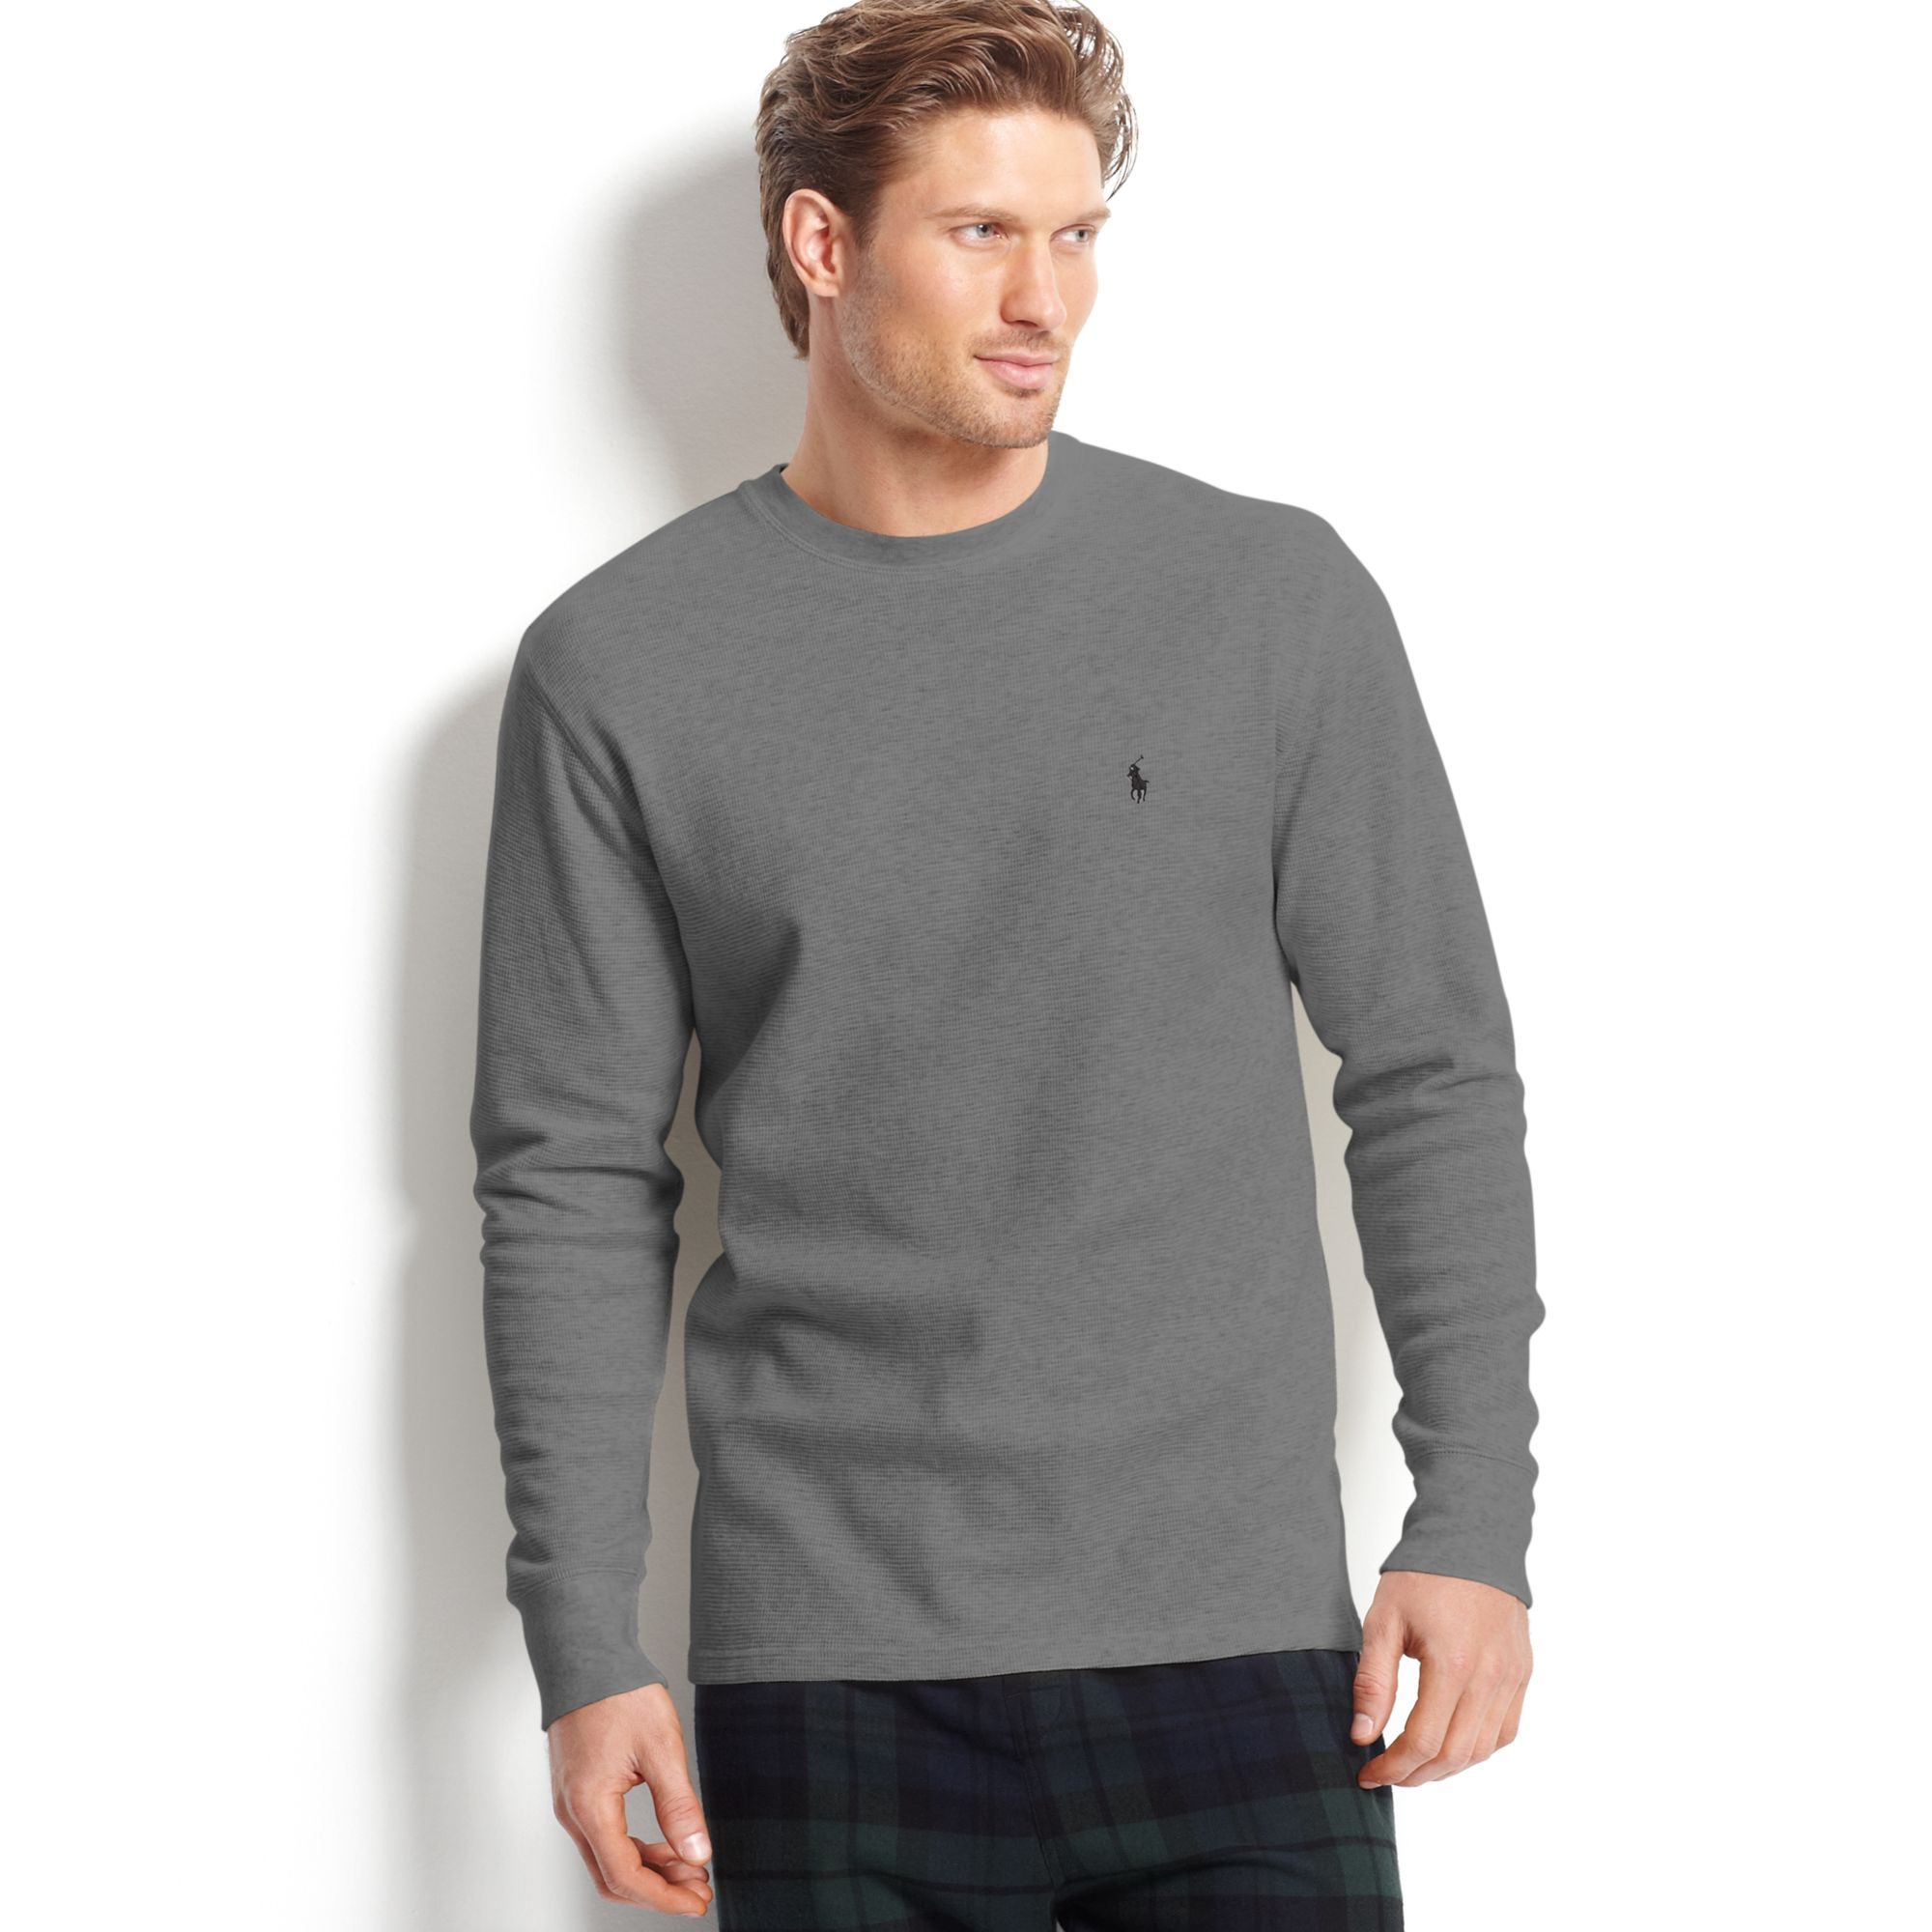 Ralph lauren long sleeve crew neck waffle knit thermal Thermal t shirt long sleeve